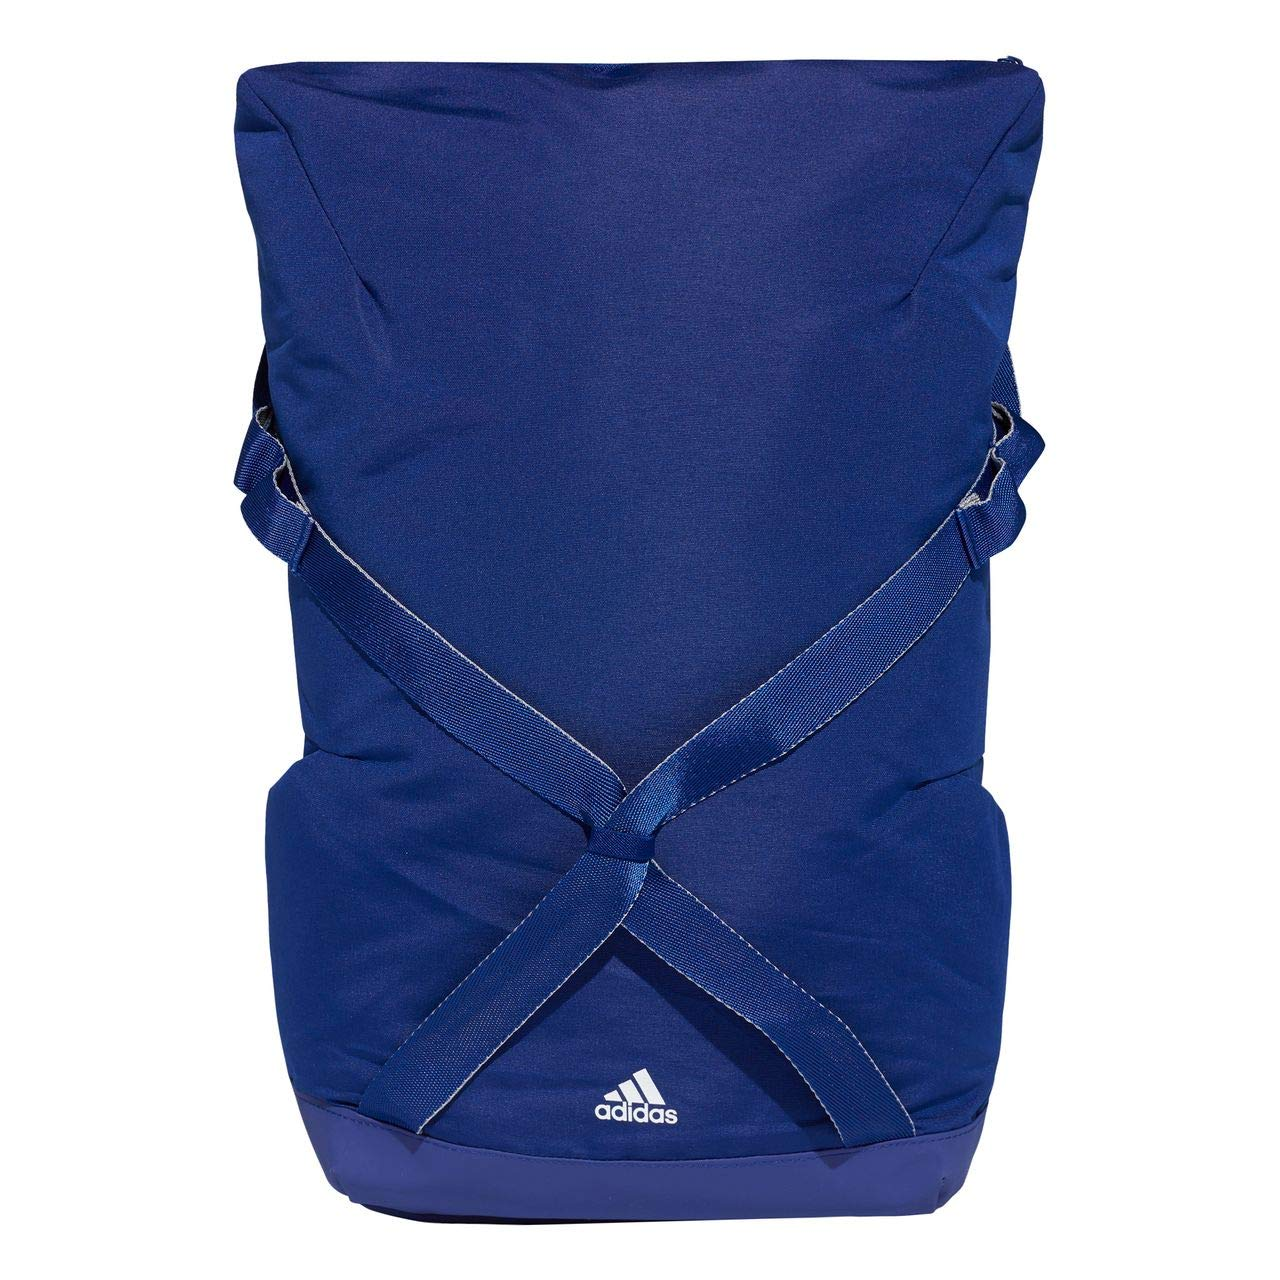 528add58a9b2 adidas Unisex s Z.N.E. ID Backpack